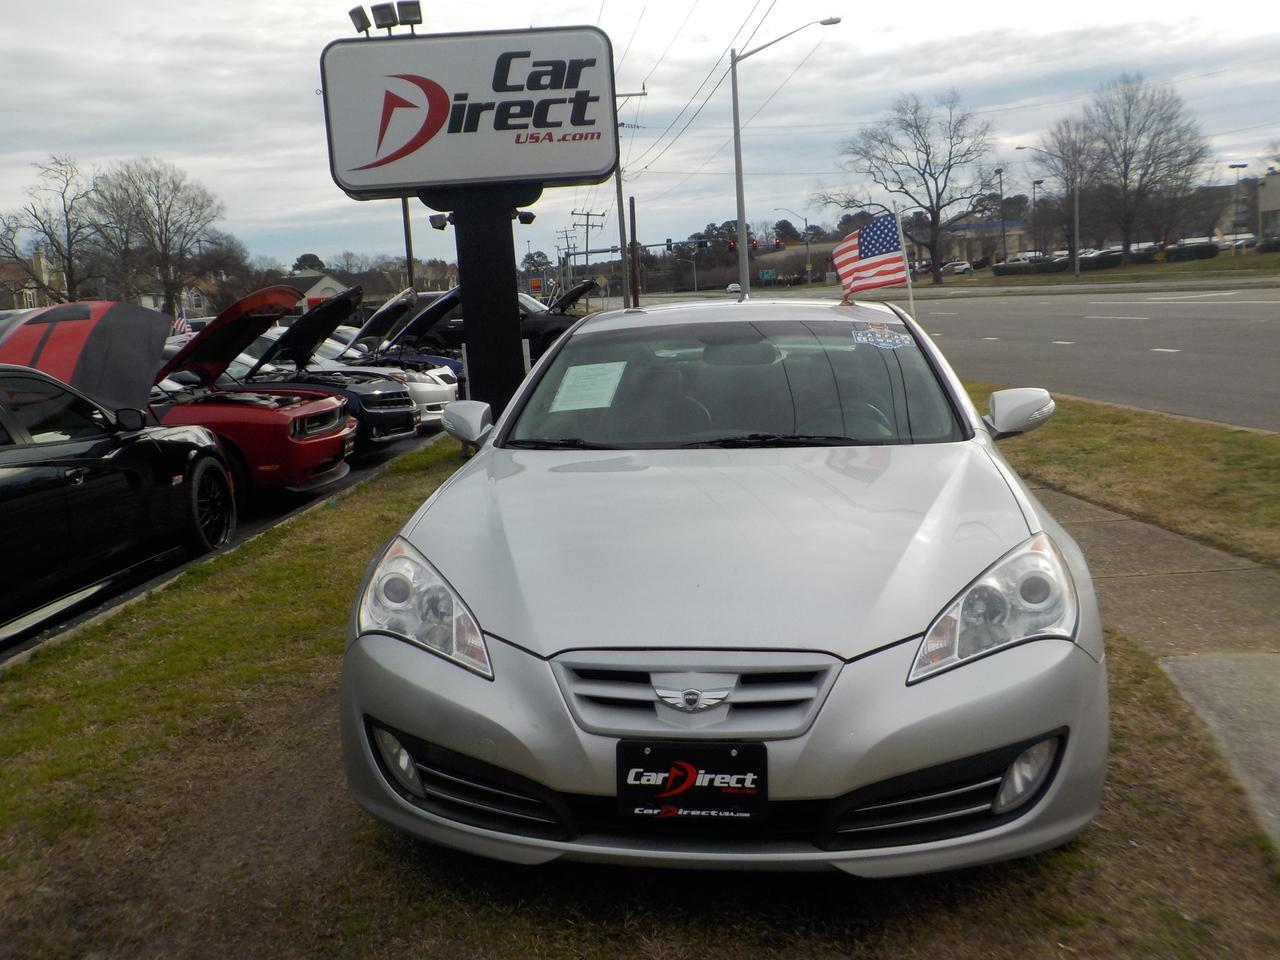 2011 HYUNDAI GENESIS GRAND TOURING COUPE, WARRANTY, SUNROOF, HEATED SEATS, BLUETOOTH, INFINITY SOUND SYSTEM, AUX PORT! Virginia Beach VA